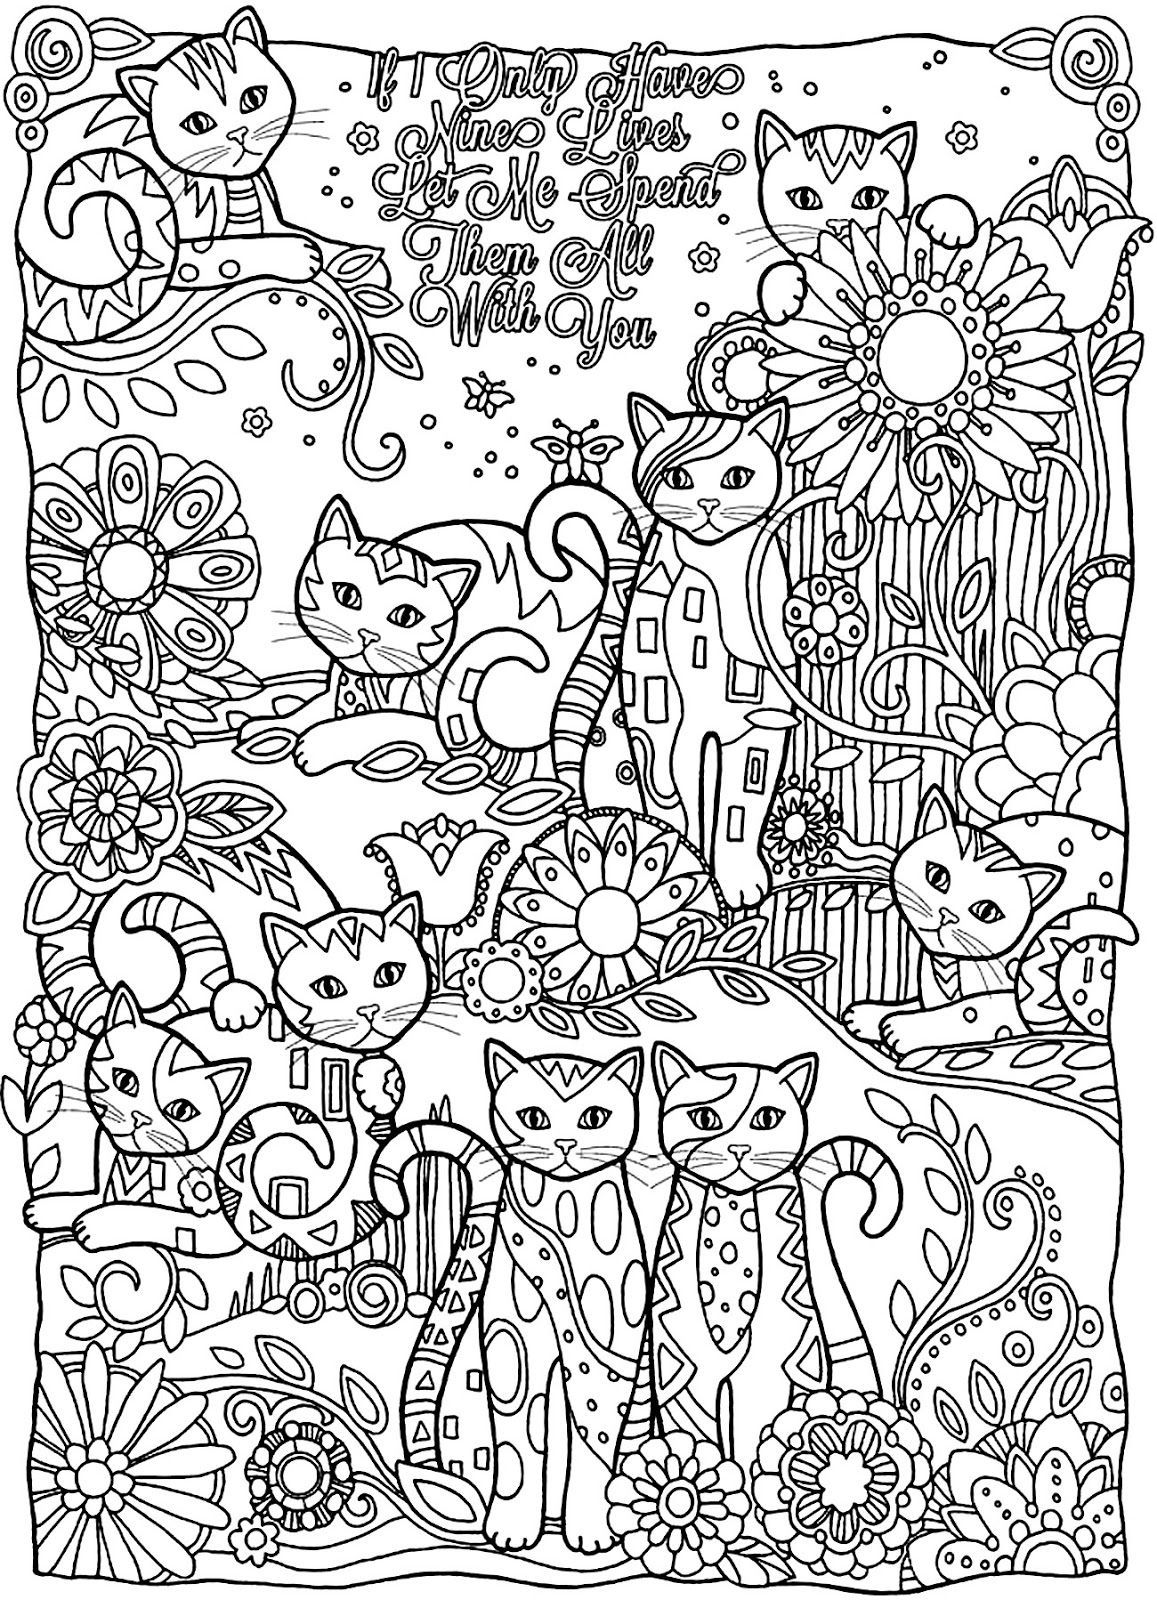 Pin By Wendy Allison On Cute Cat Coloring Book Animal Coloring Pages Cat Coloring Page